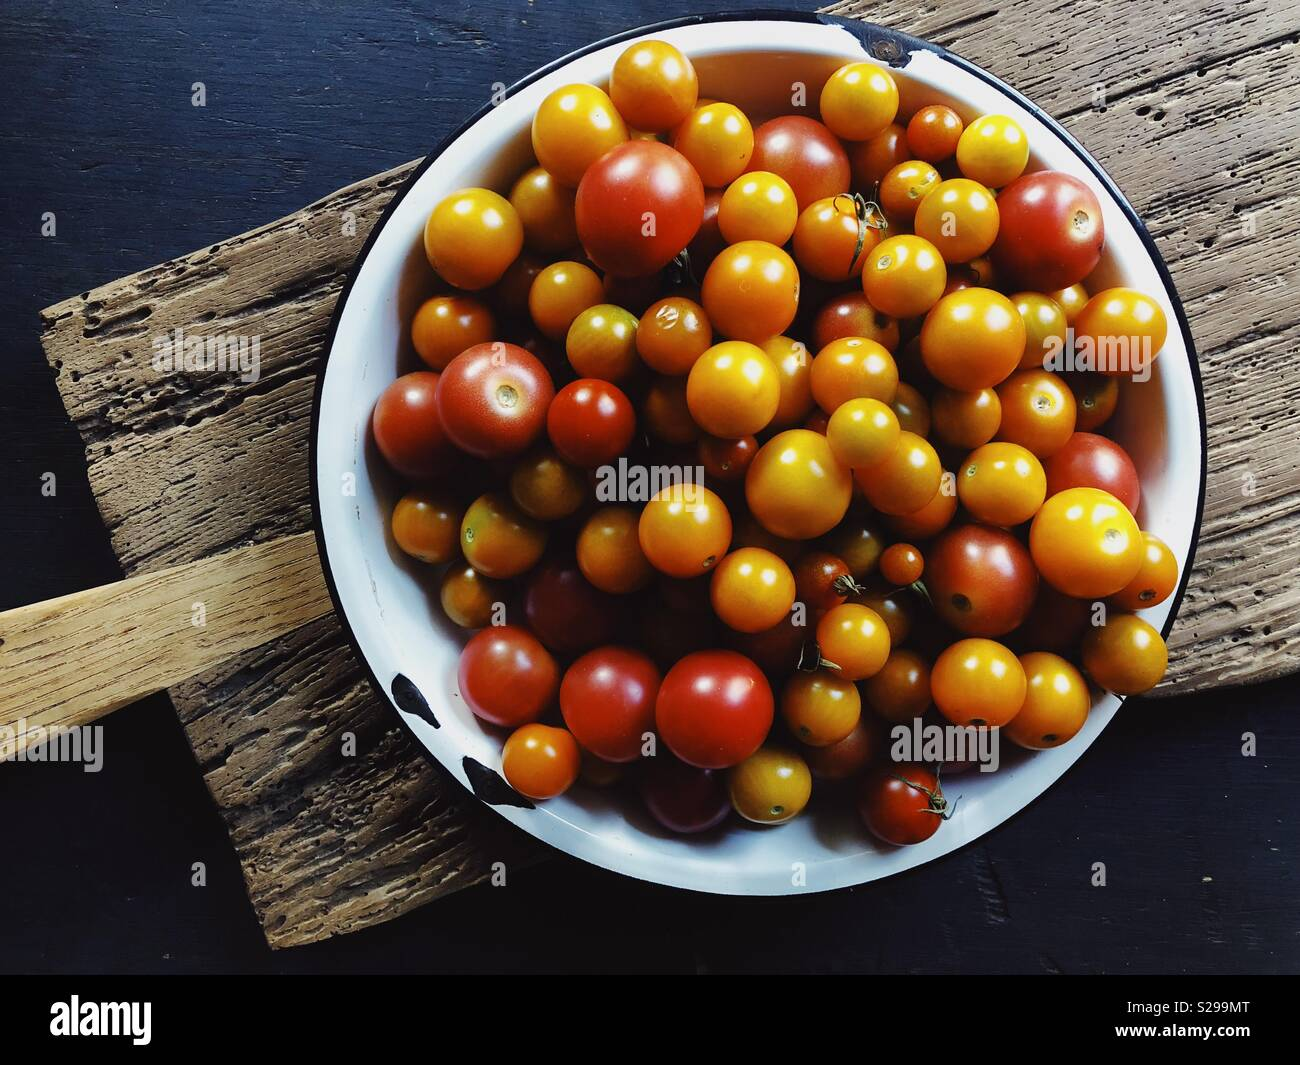 Cherry tomatoes harvested from an urban garden - Stock Image